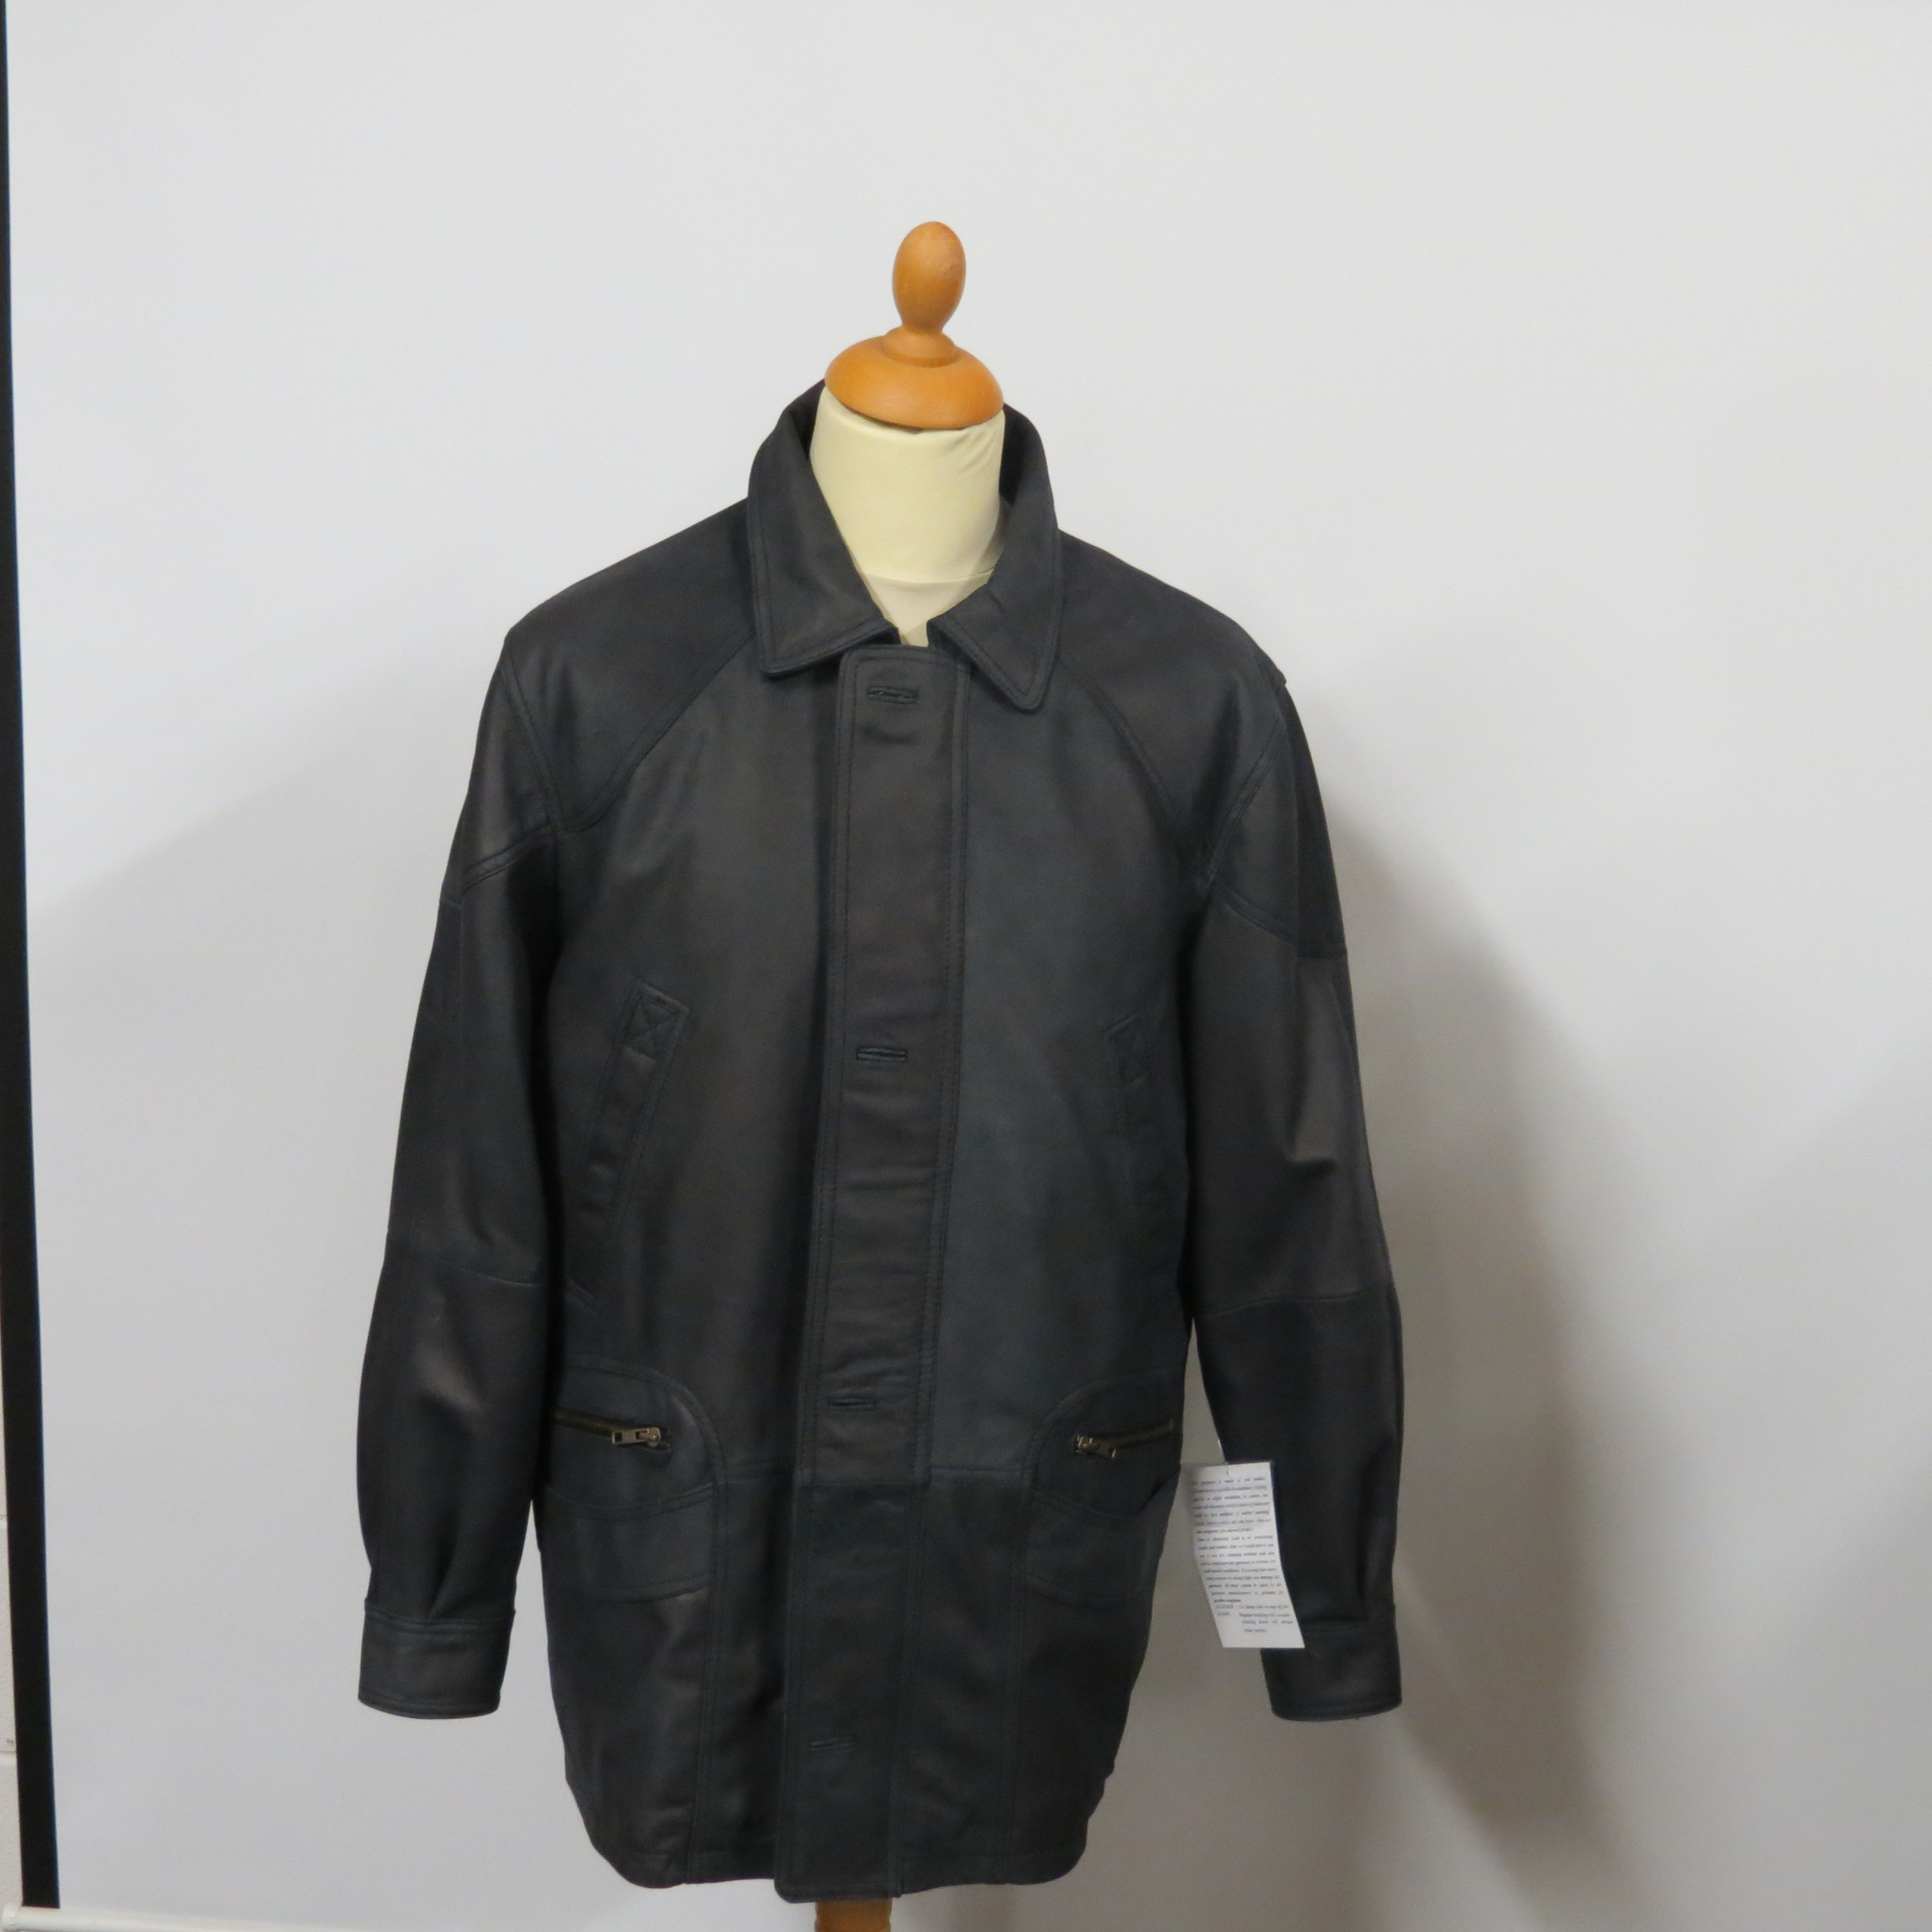 Mens 1439 3/4 length, charcoal soft buff leather, sizes small to 3XL